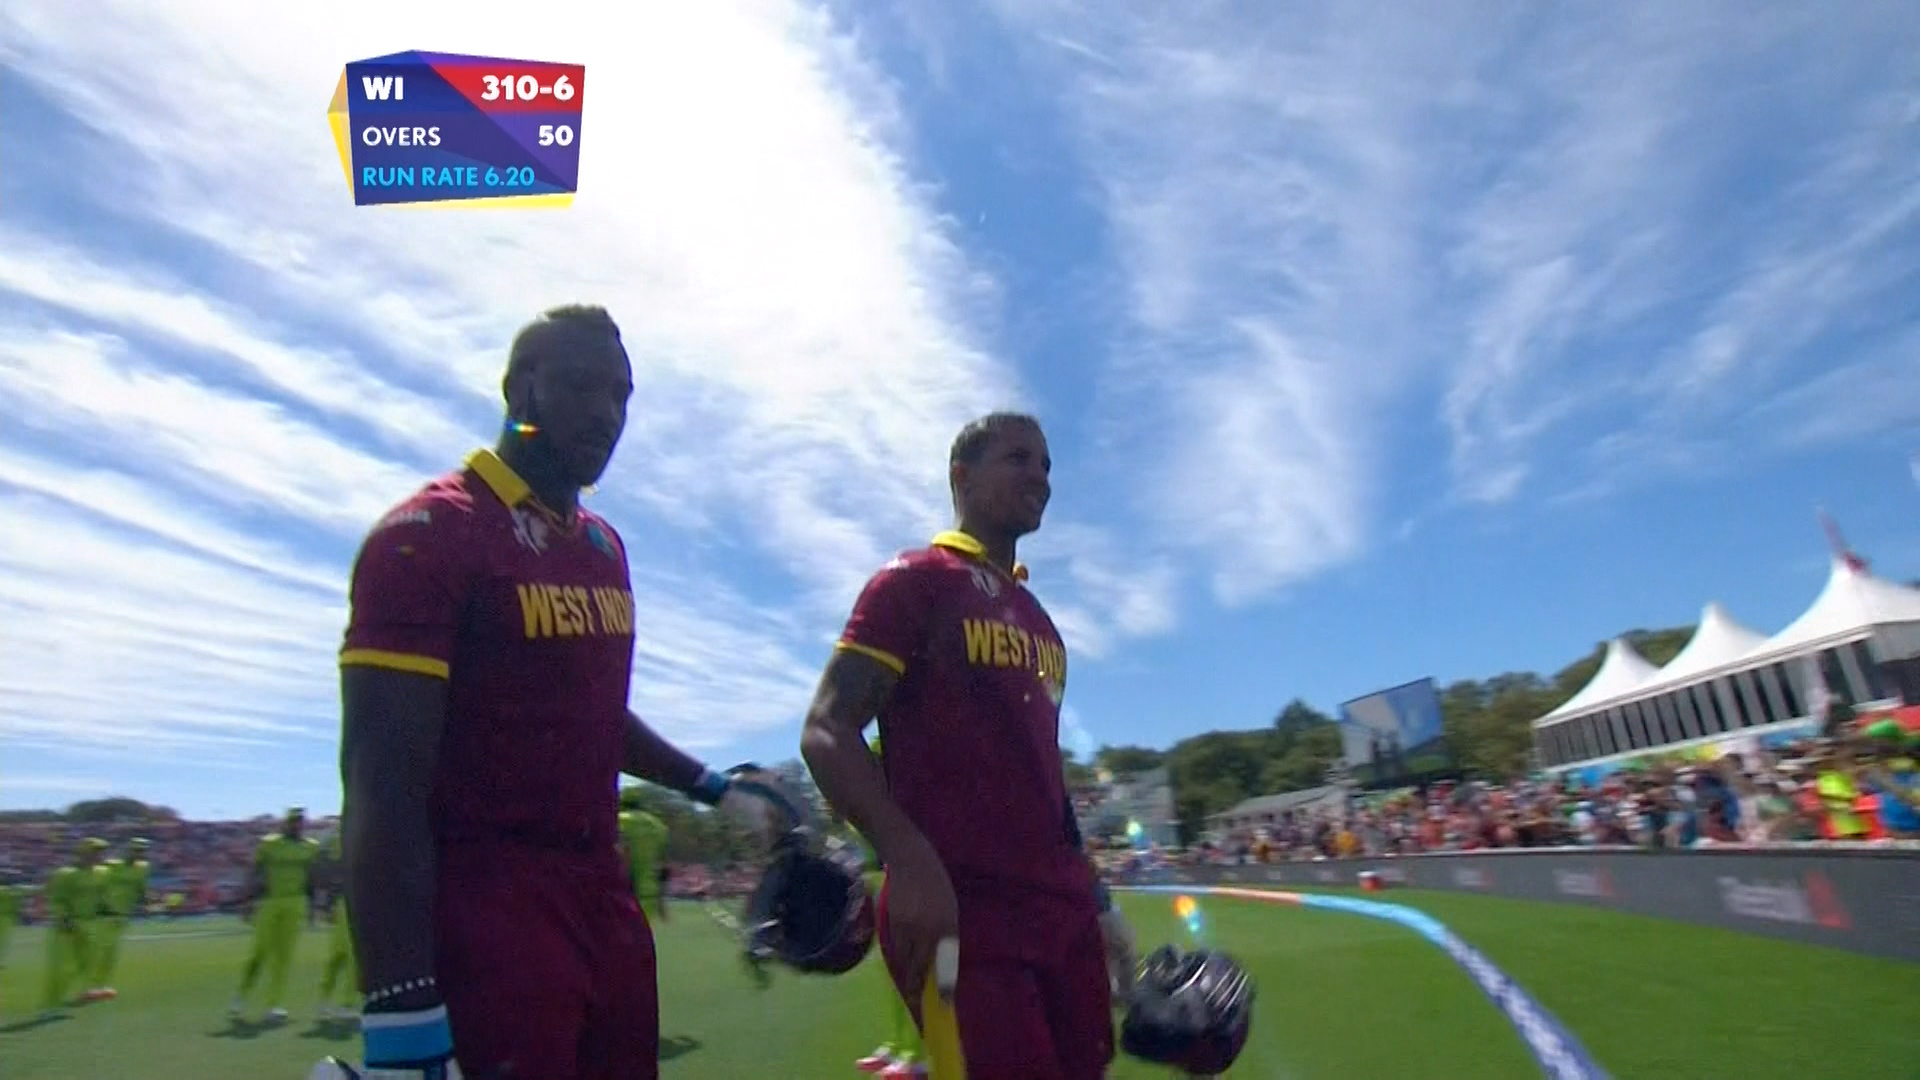 Lendl Simmons Wicket – PAK vs WI